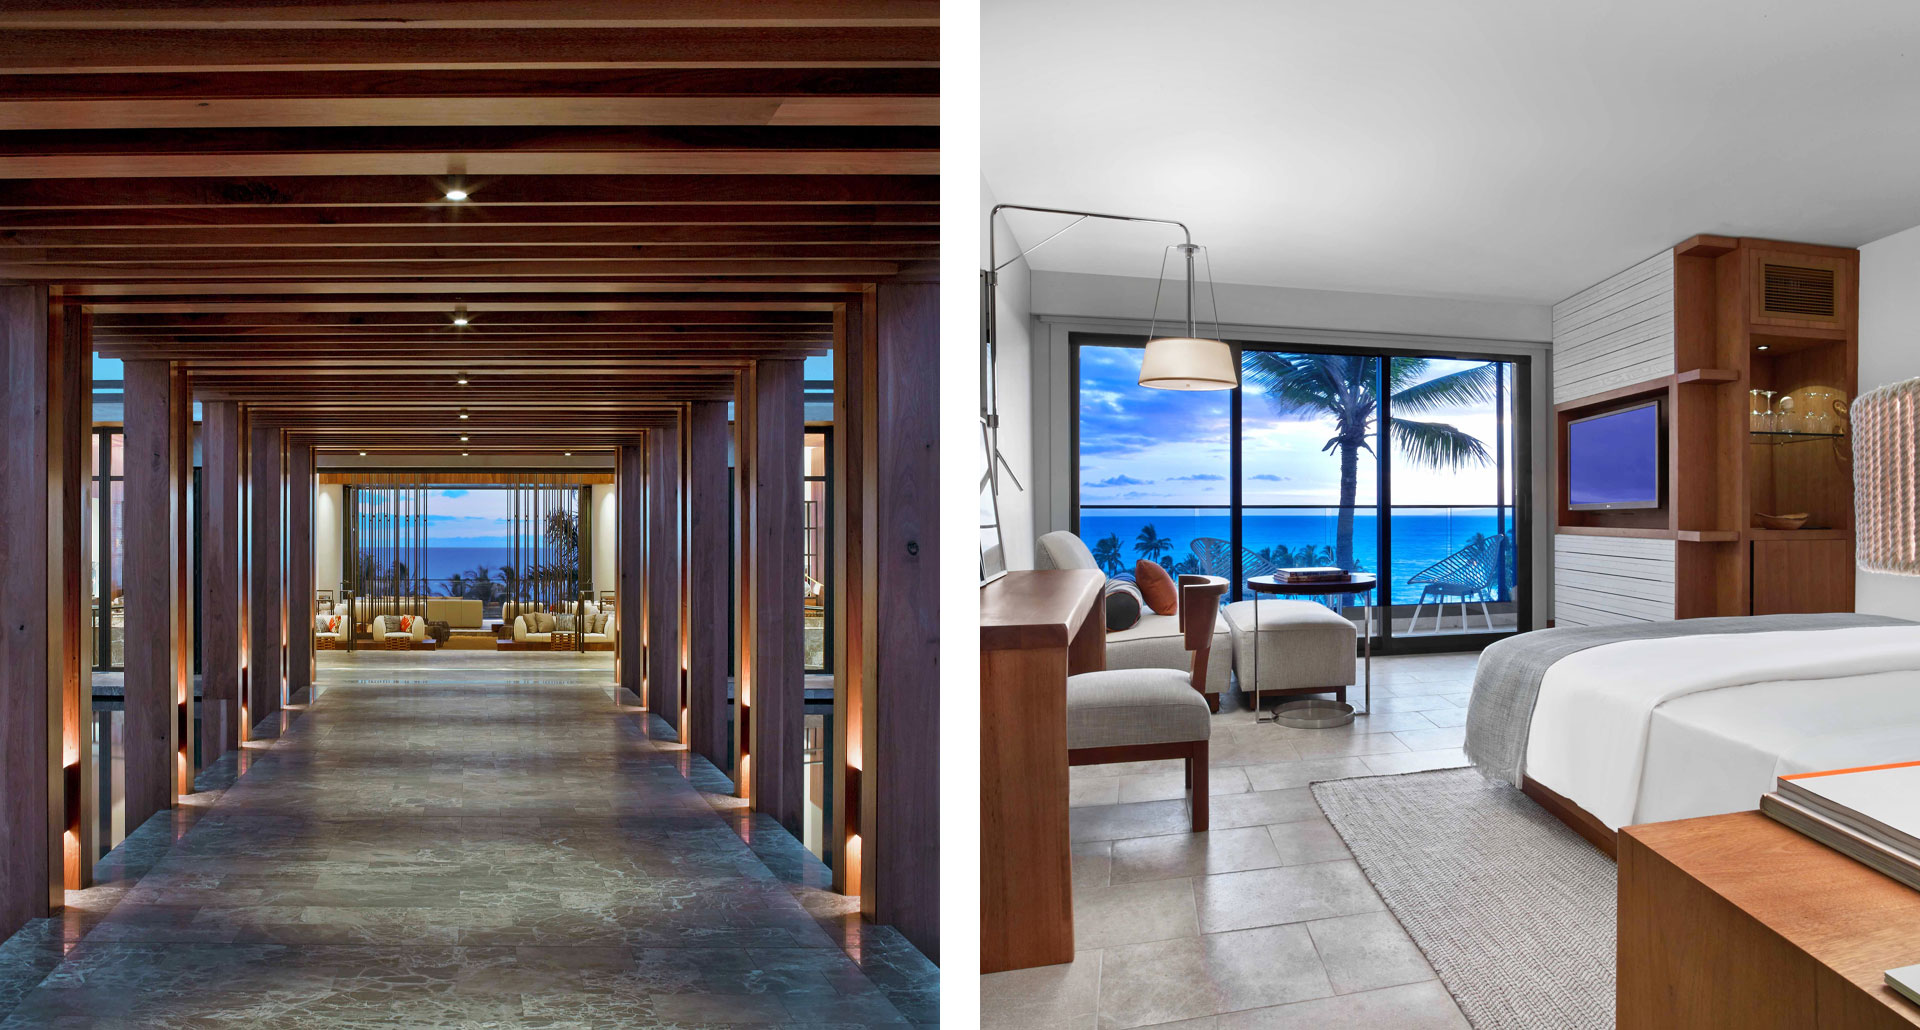 Andaz Maui at Wailea - boutique hotel in the Island of Maui